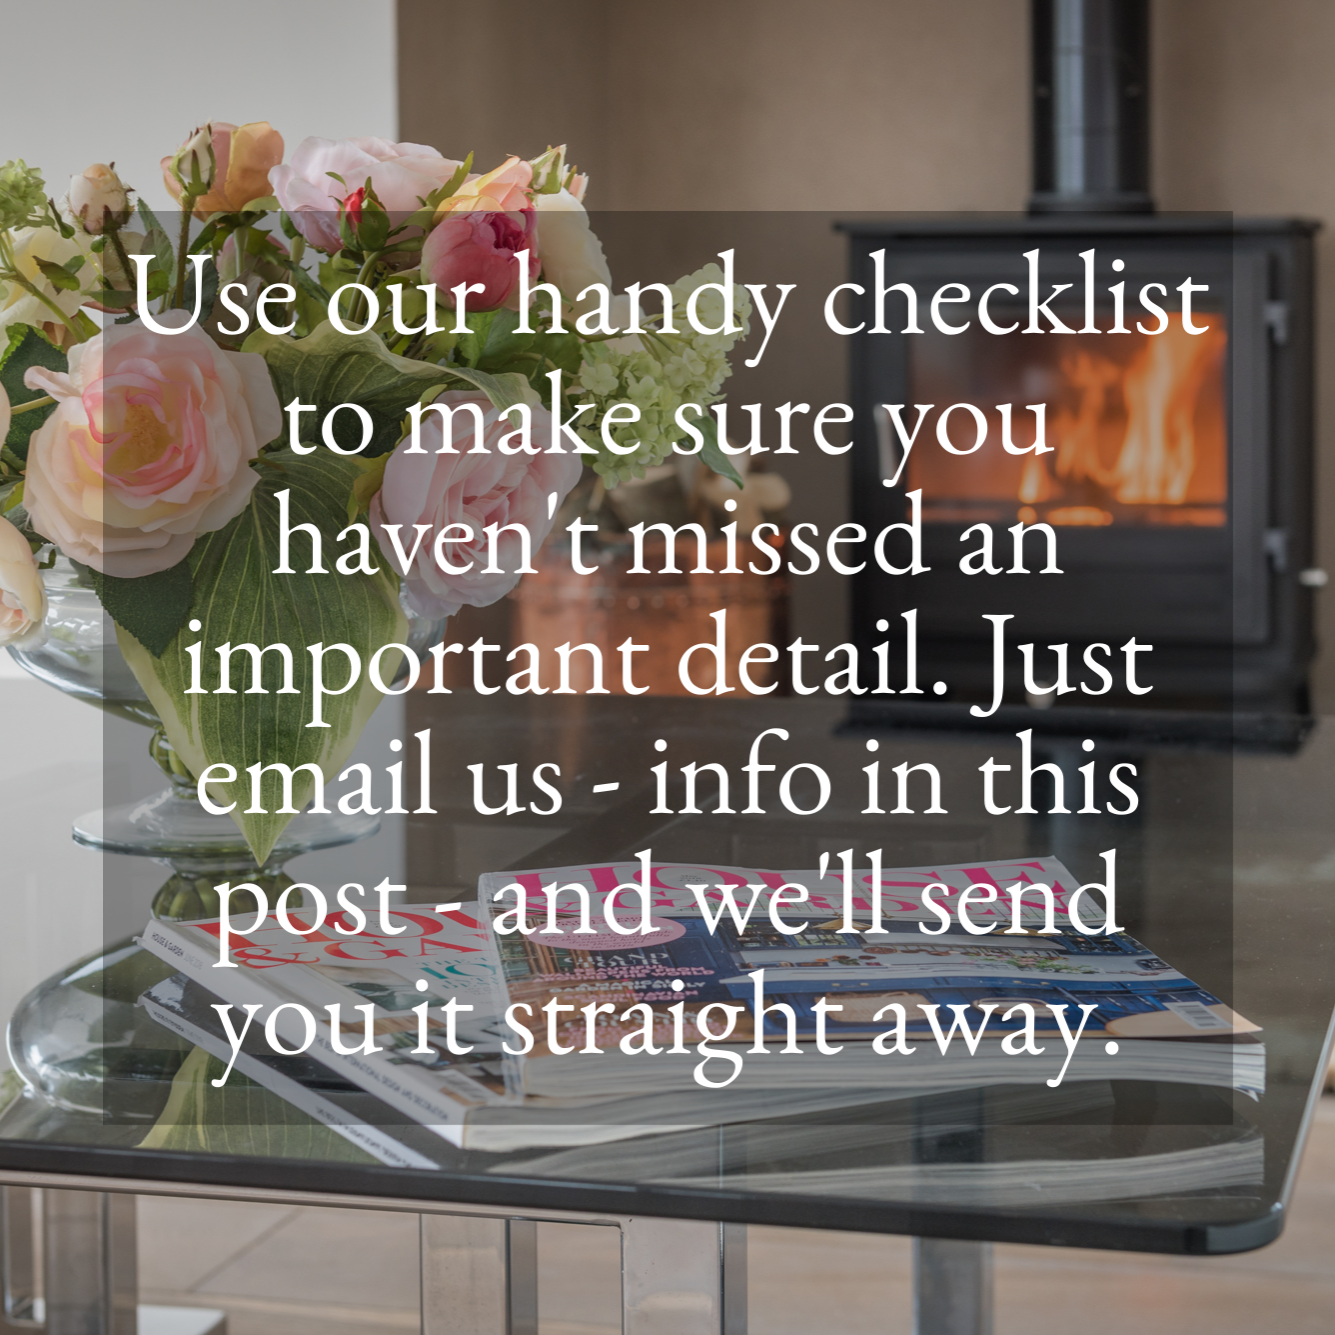 tg10-use-our-handy-checklist-to-make-sure-you-havent-missed-an-important-detail